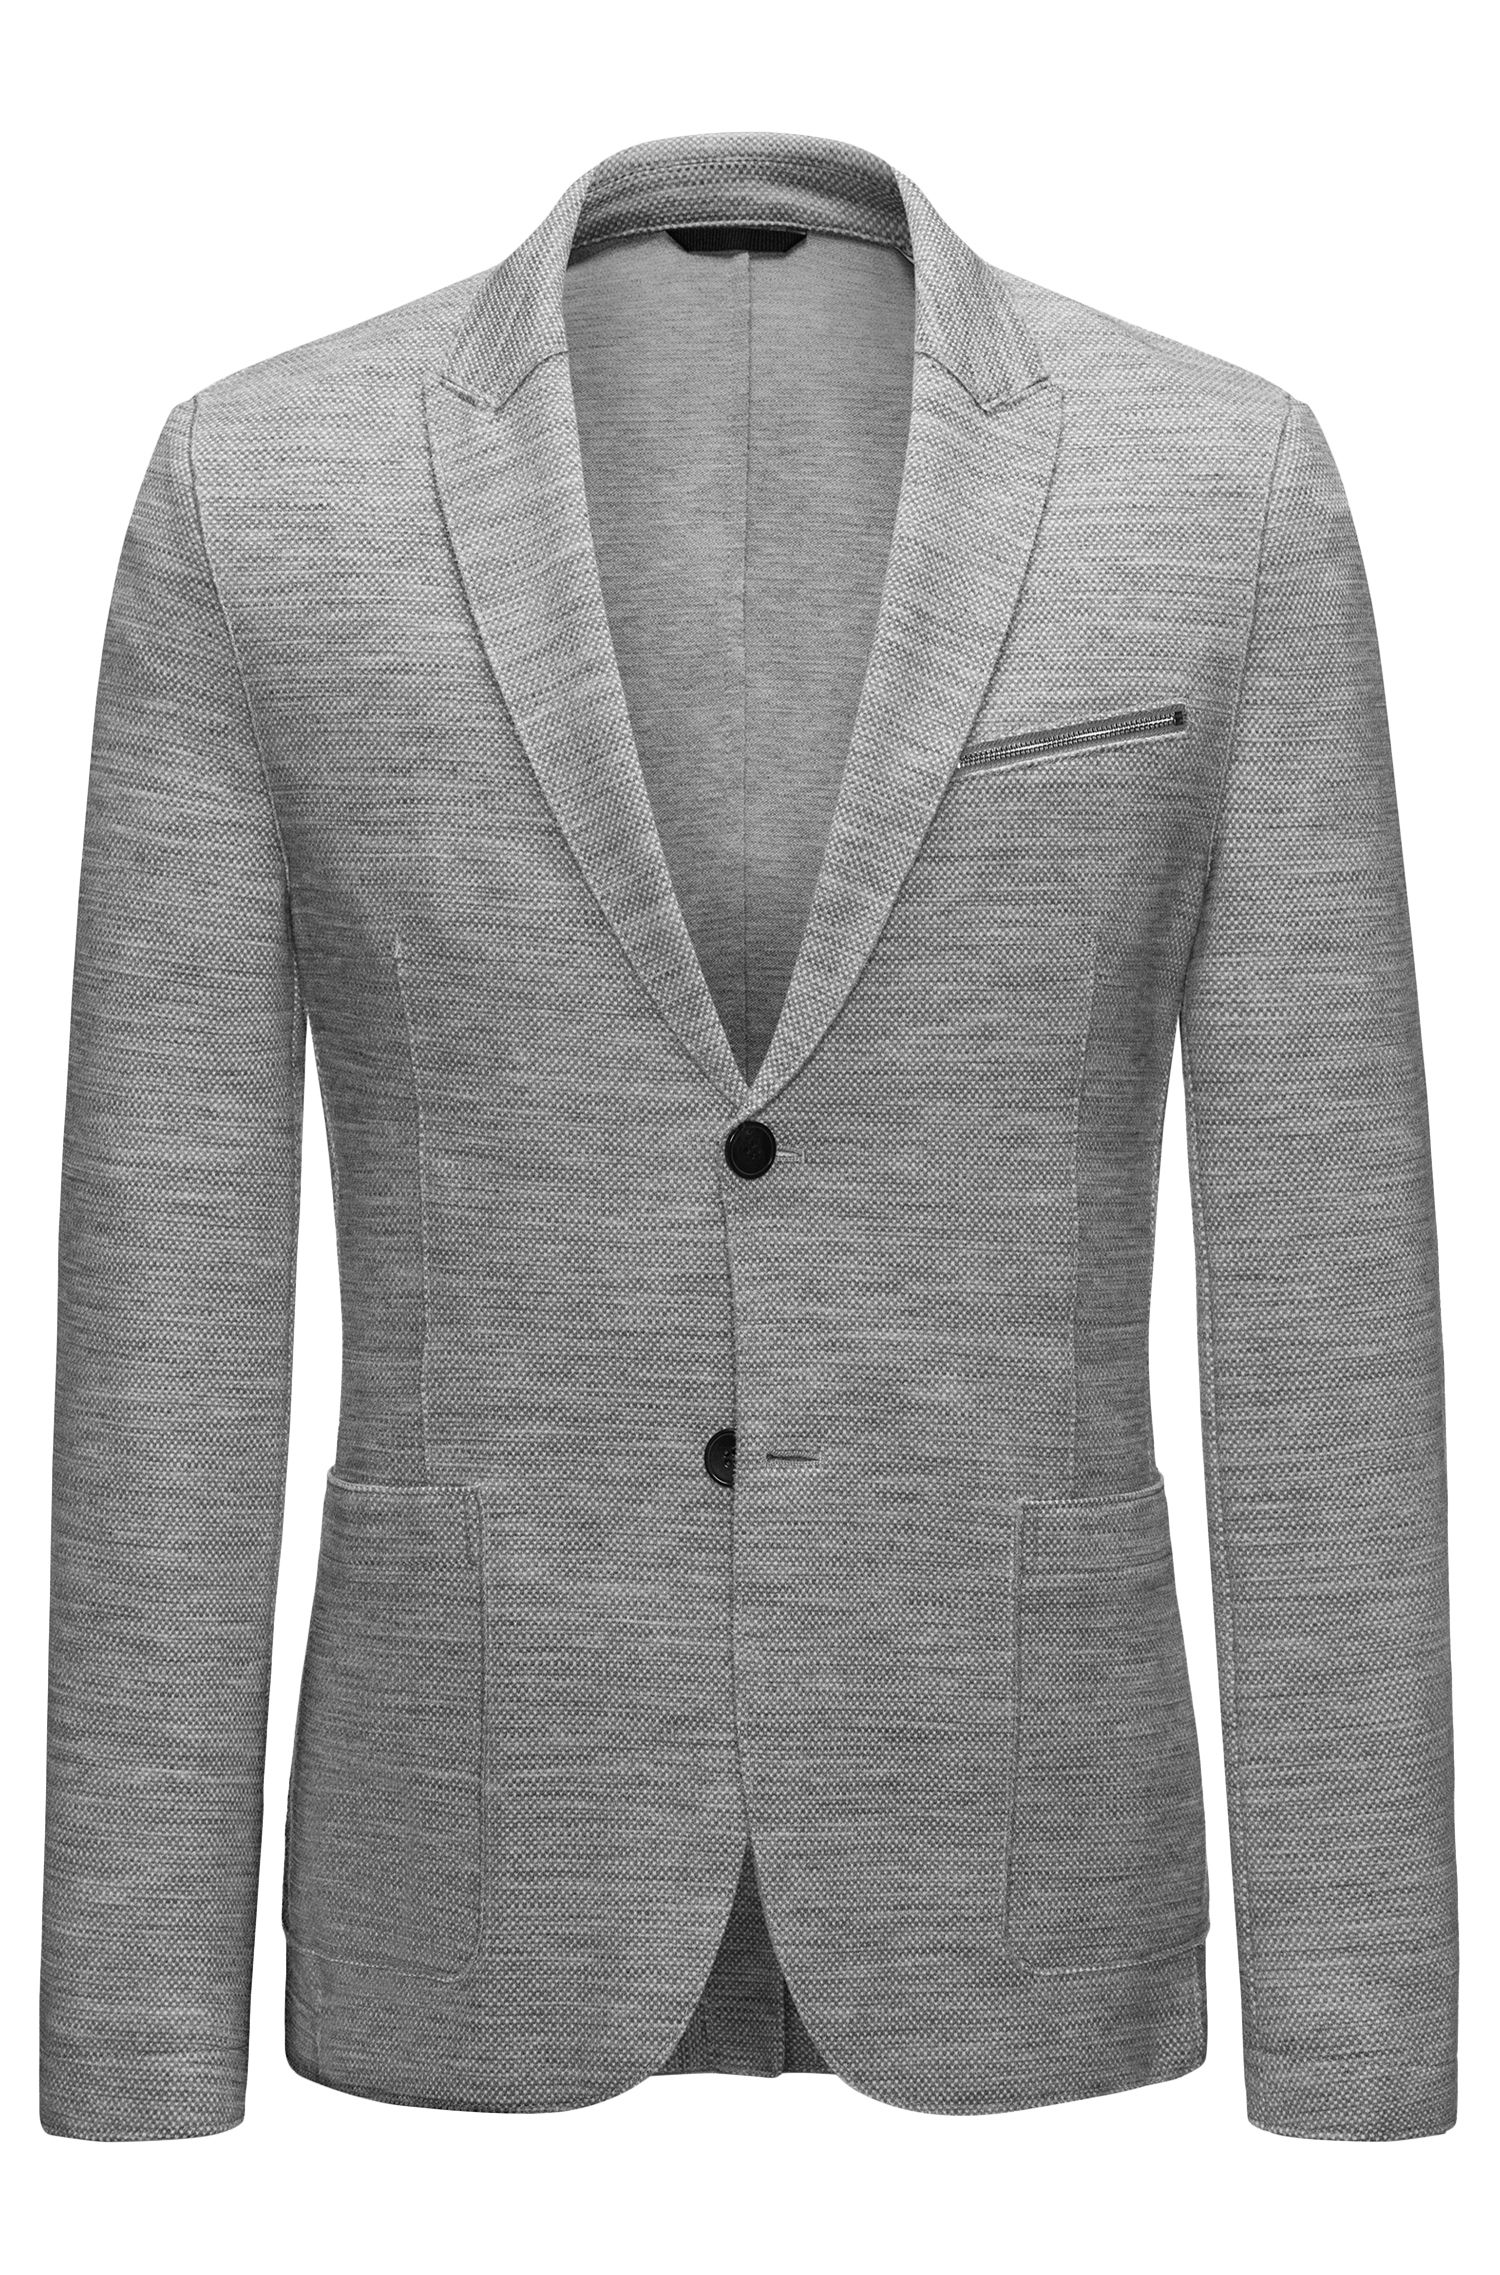 Wool Blend Sport Coat, Slim Fit | Aprino